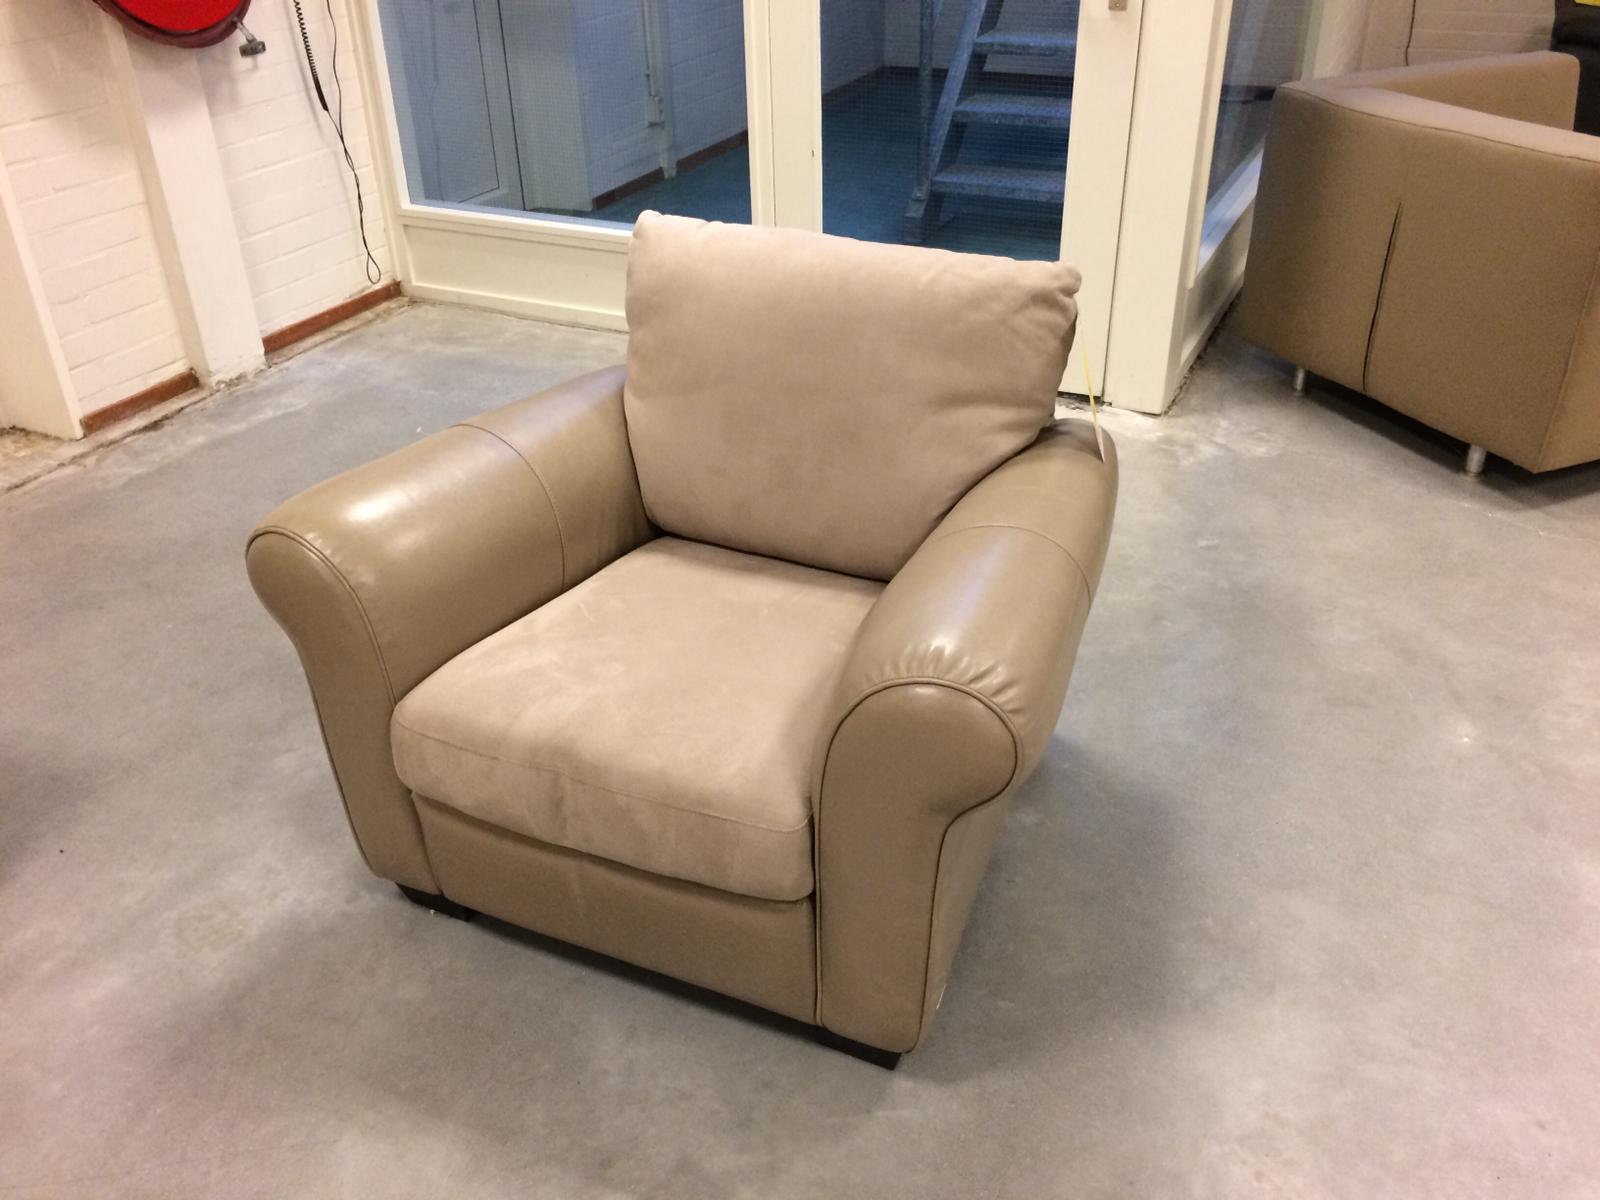 Ital fauteuil